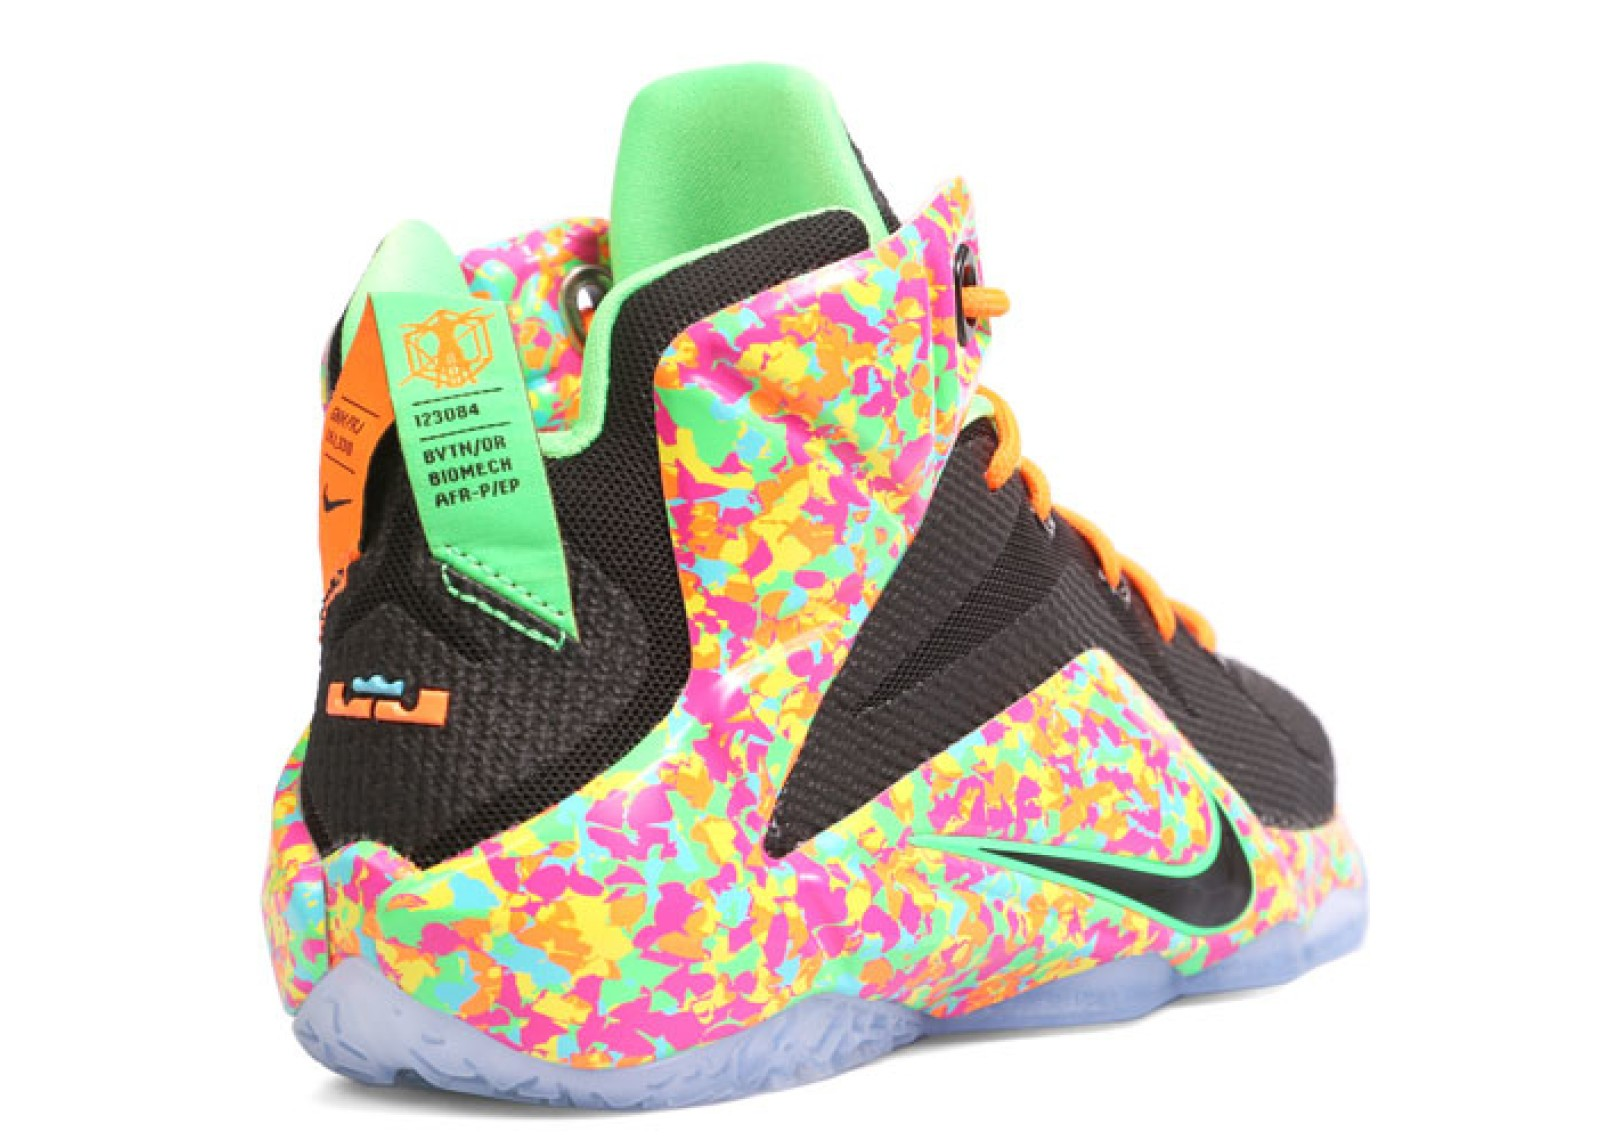 Lebron Fruity Pebbles Size 10 |Lebron 10 Fruity Pebbles